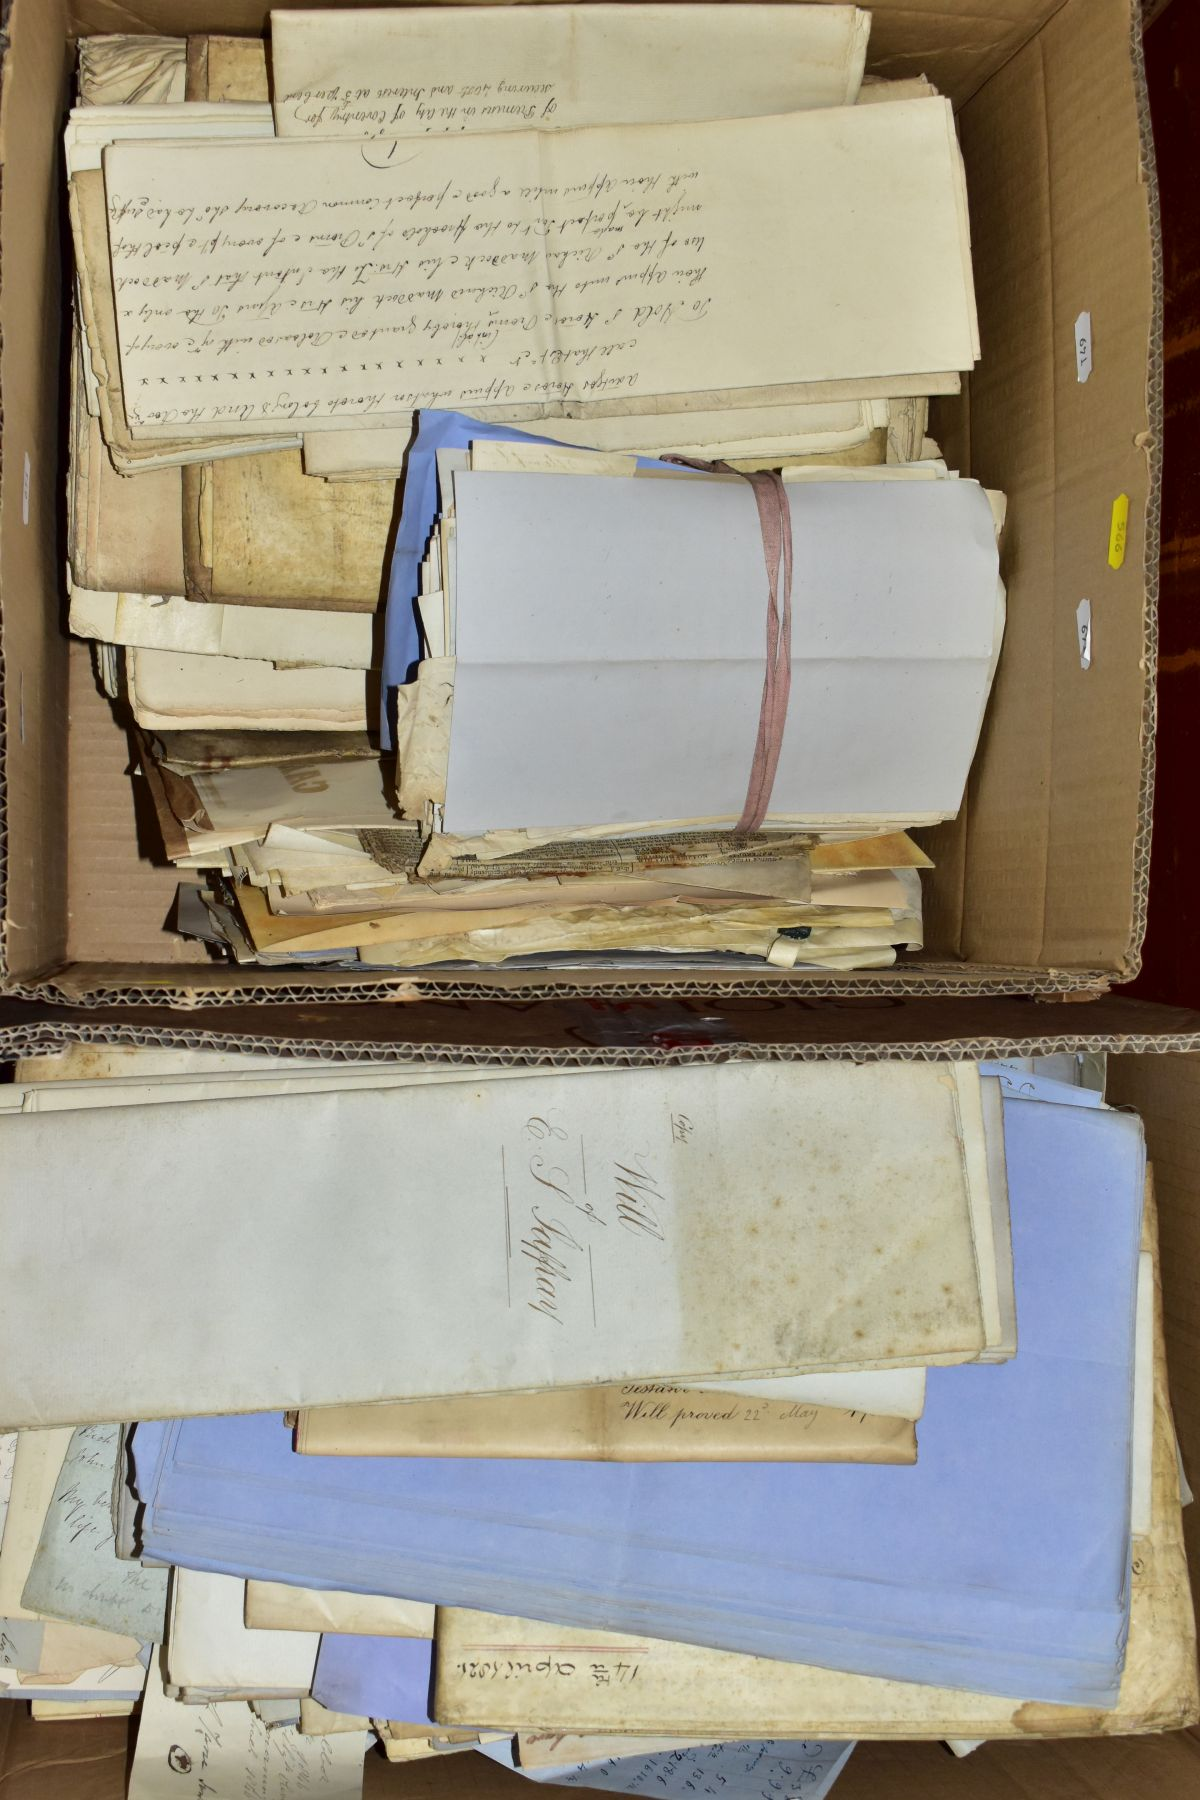 INDENTURES, a large metal trunk containing two boxes of several hundred Indentures, Conveyances, - Image 2 of 4